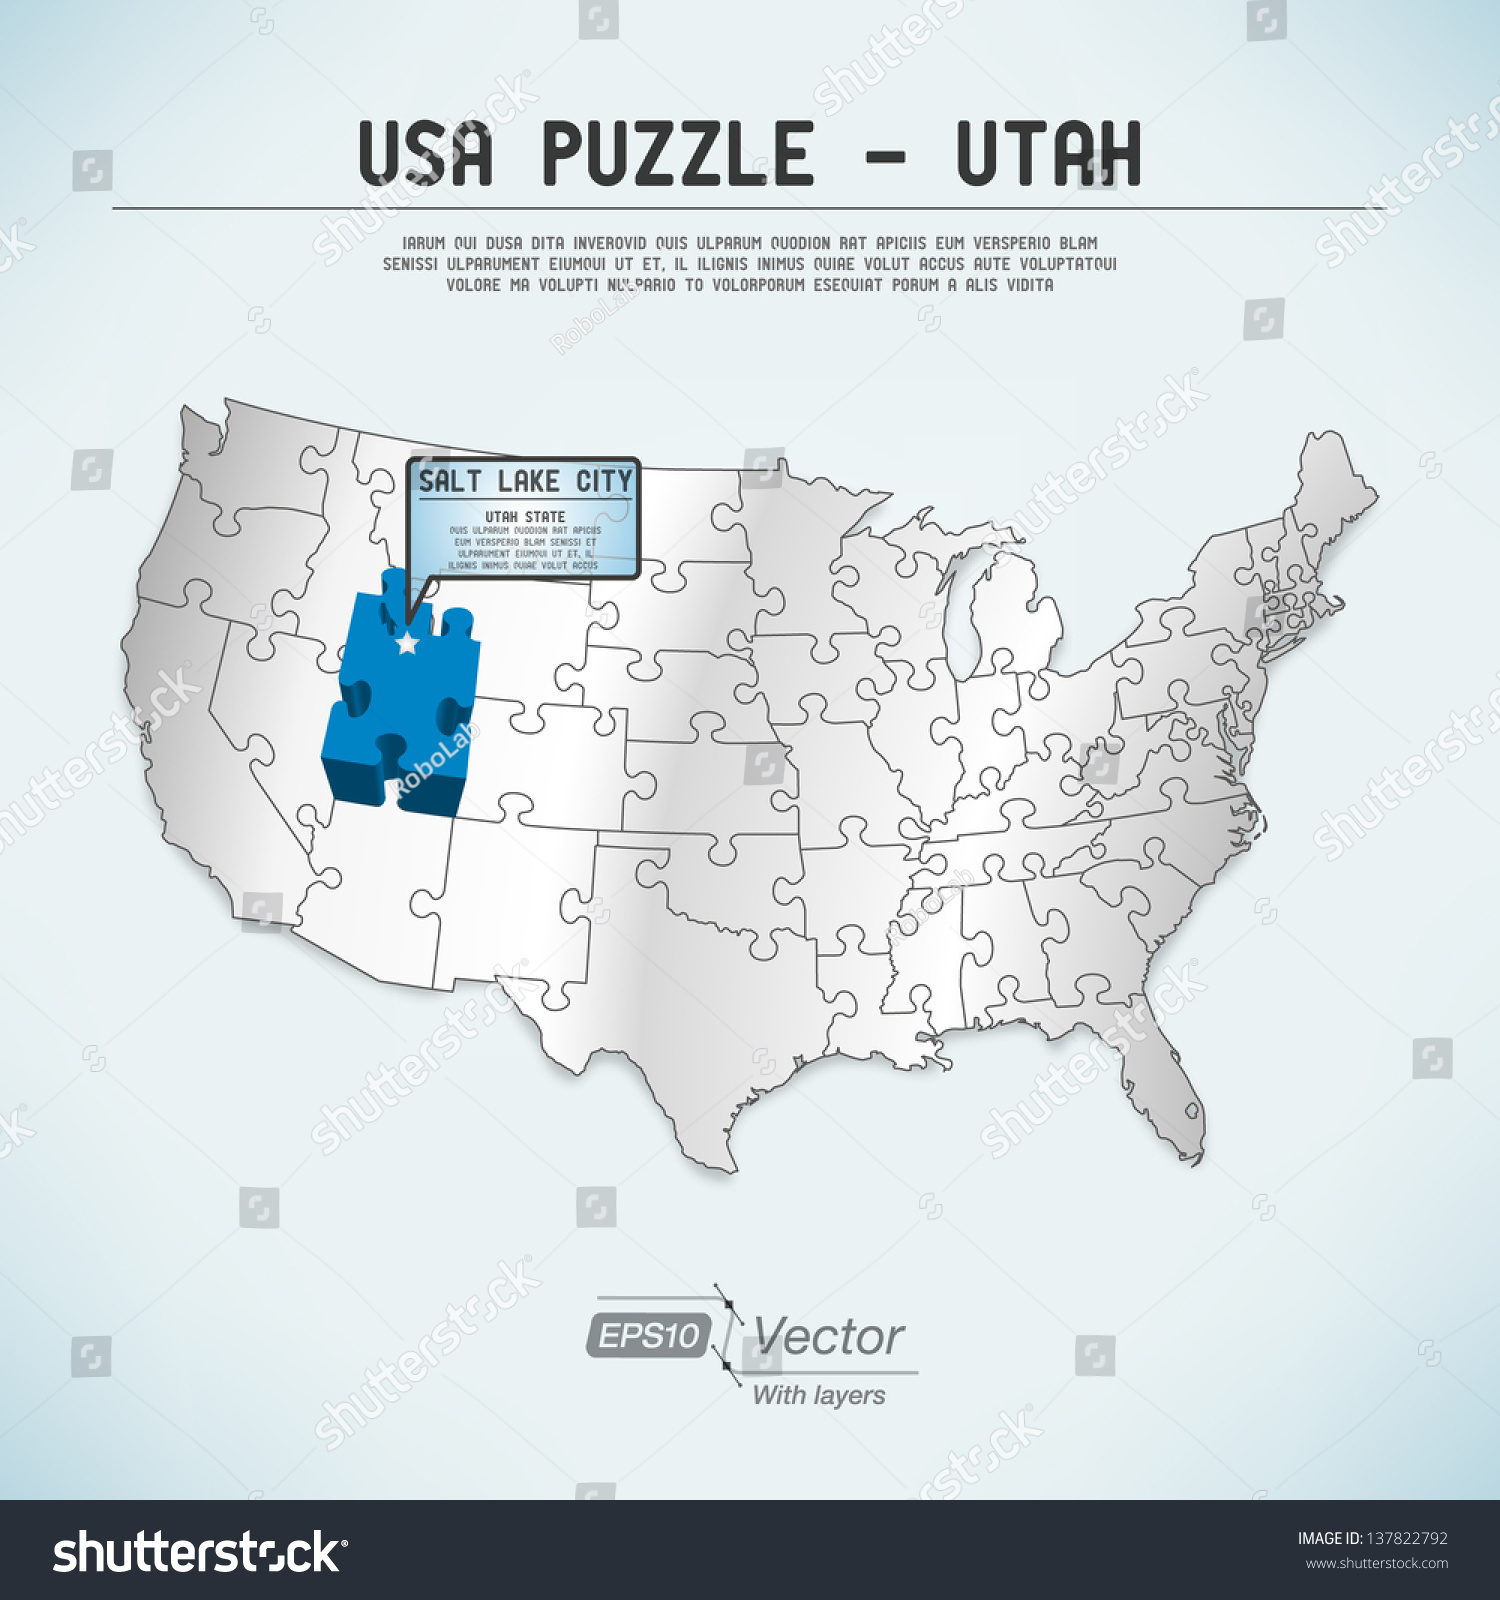 Reference Map Of Utah USA Nations Online Project Map Usa Utah Map - Usa map utah